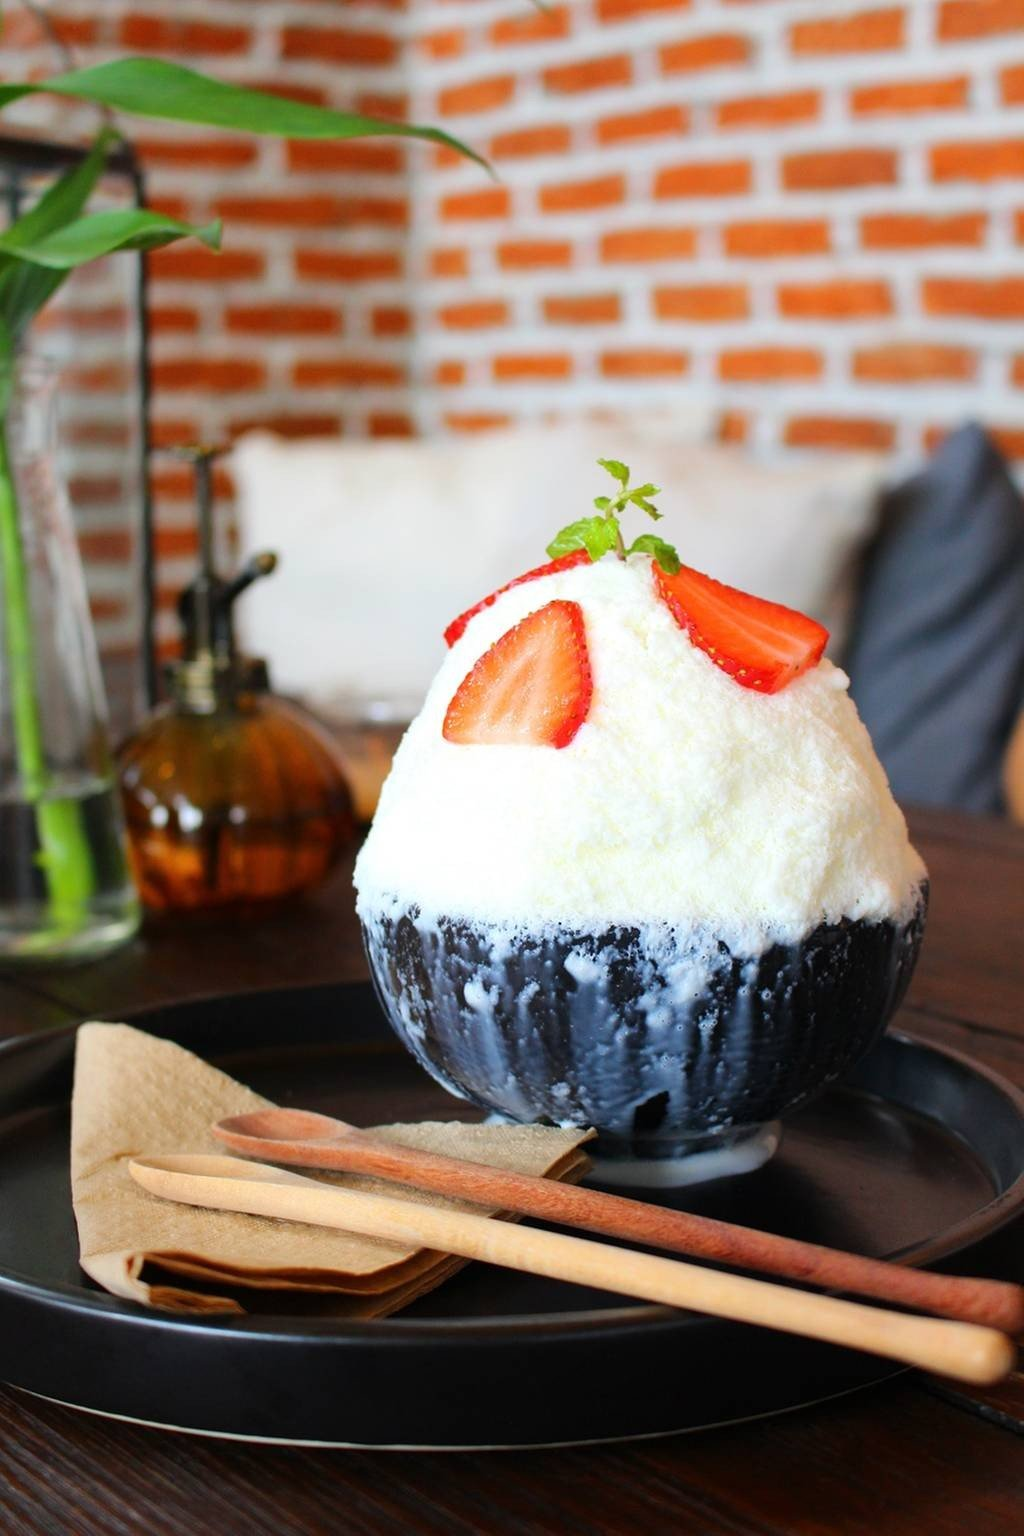 Strawberry Cheesecake Bingsu (169 บาท)